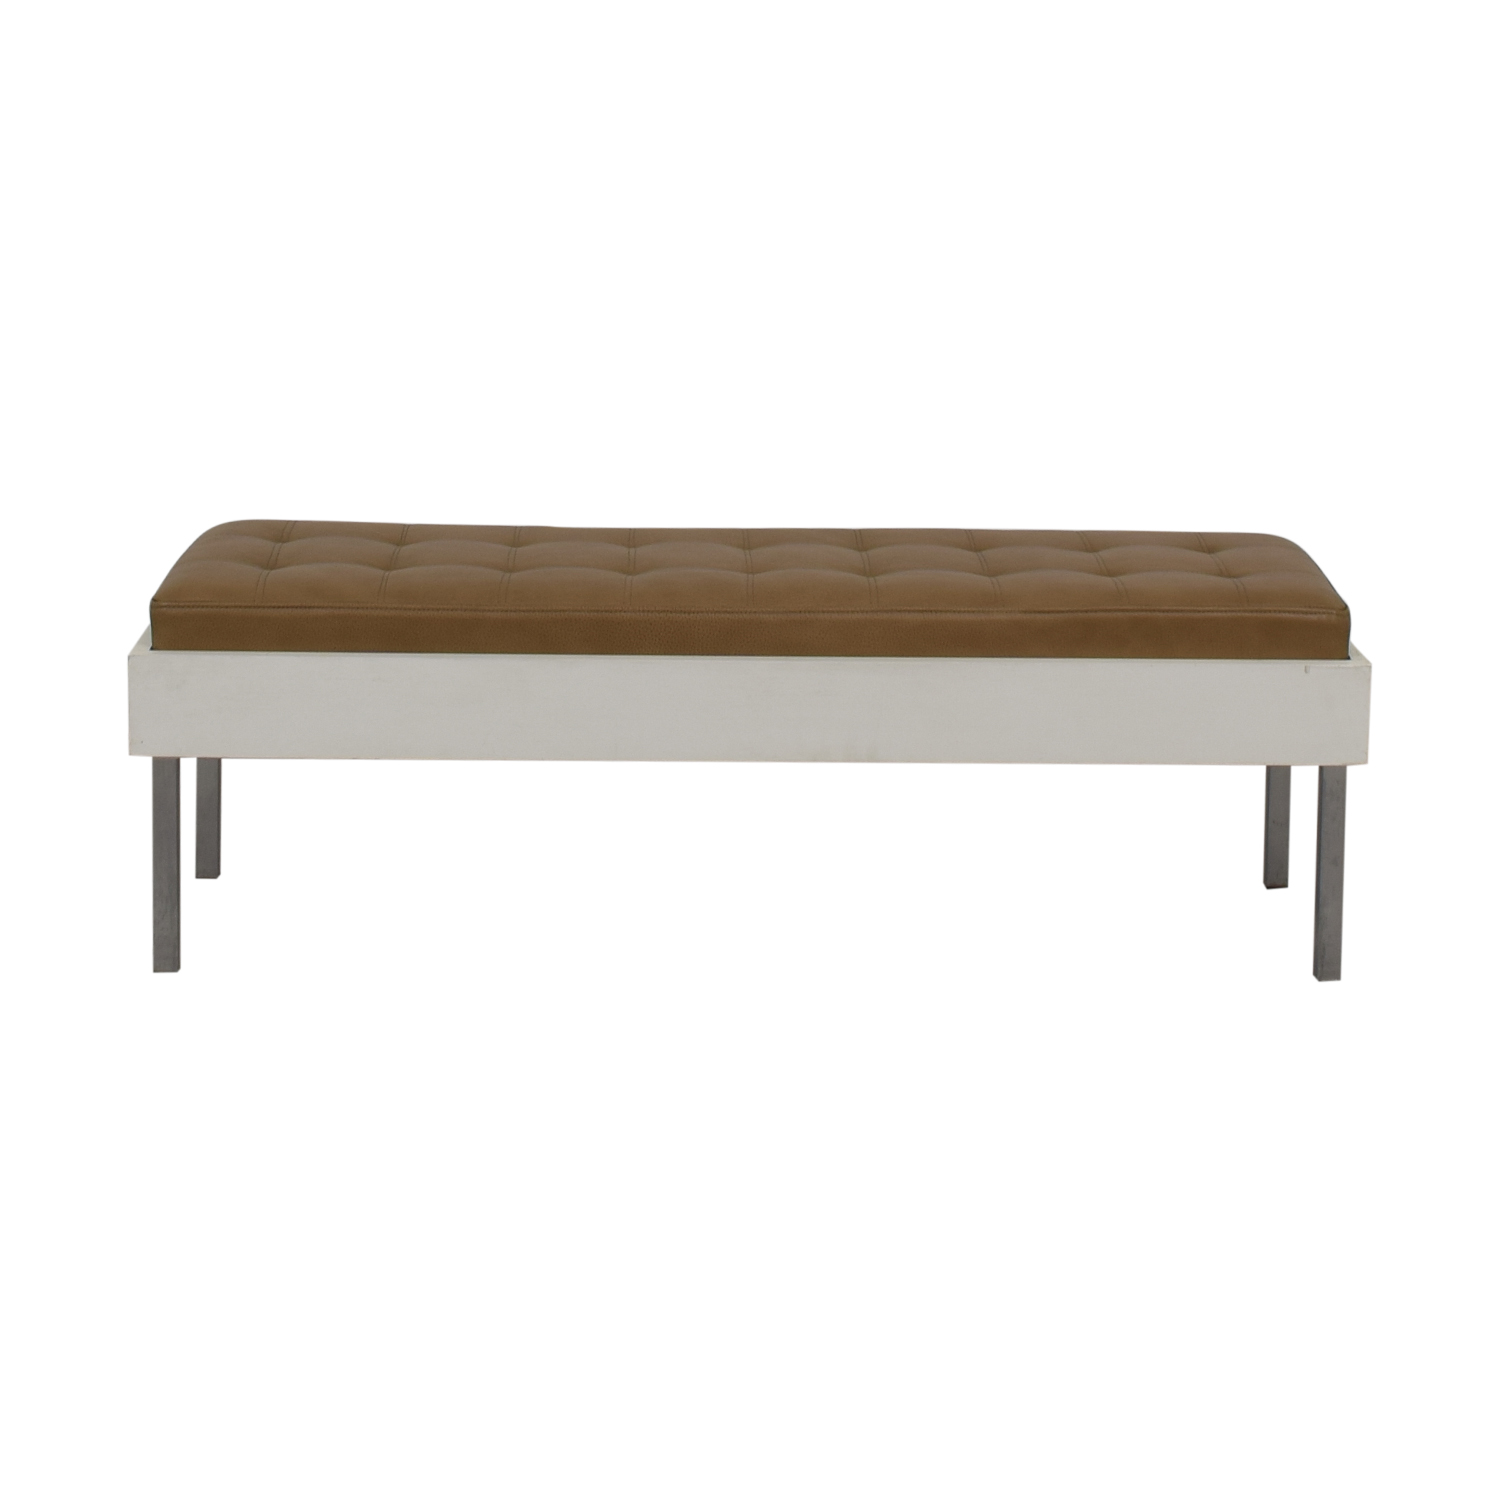 Furniture Masters Wood and Leather Tufted Bench sale